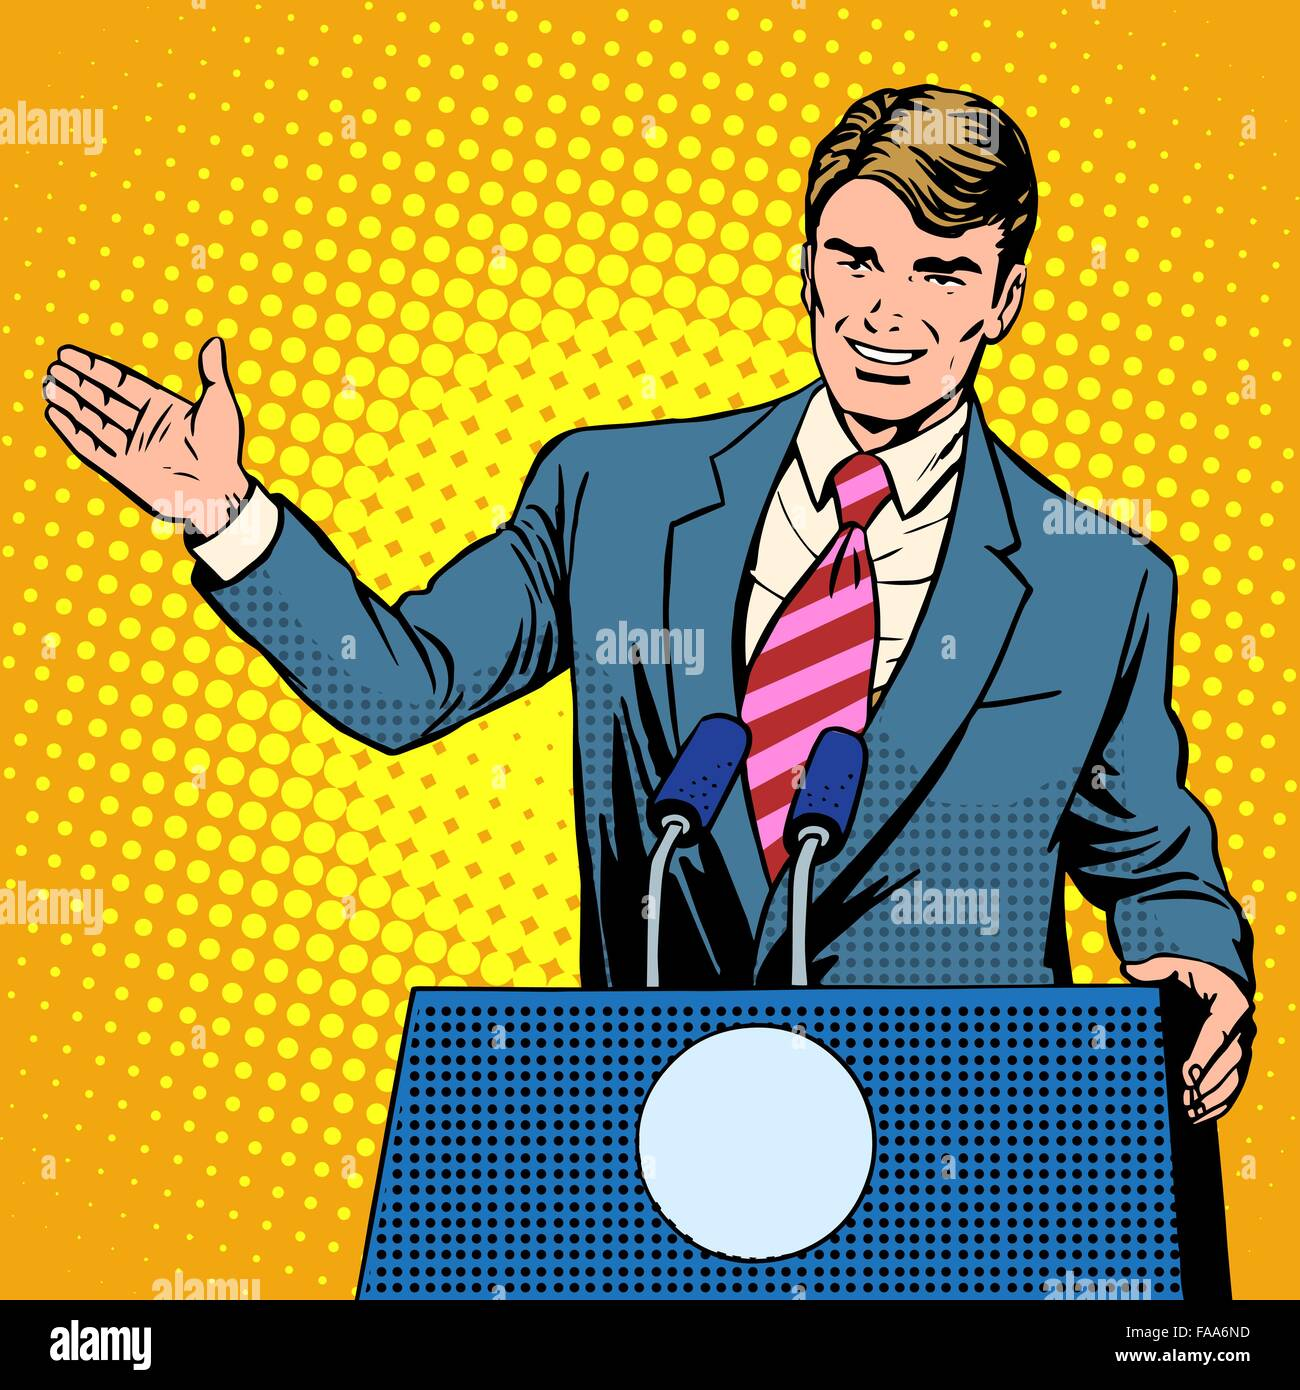 Policy candidate in the elections - Stock Vector